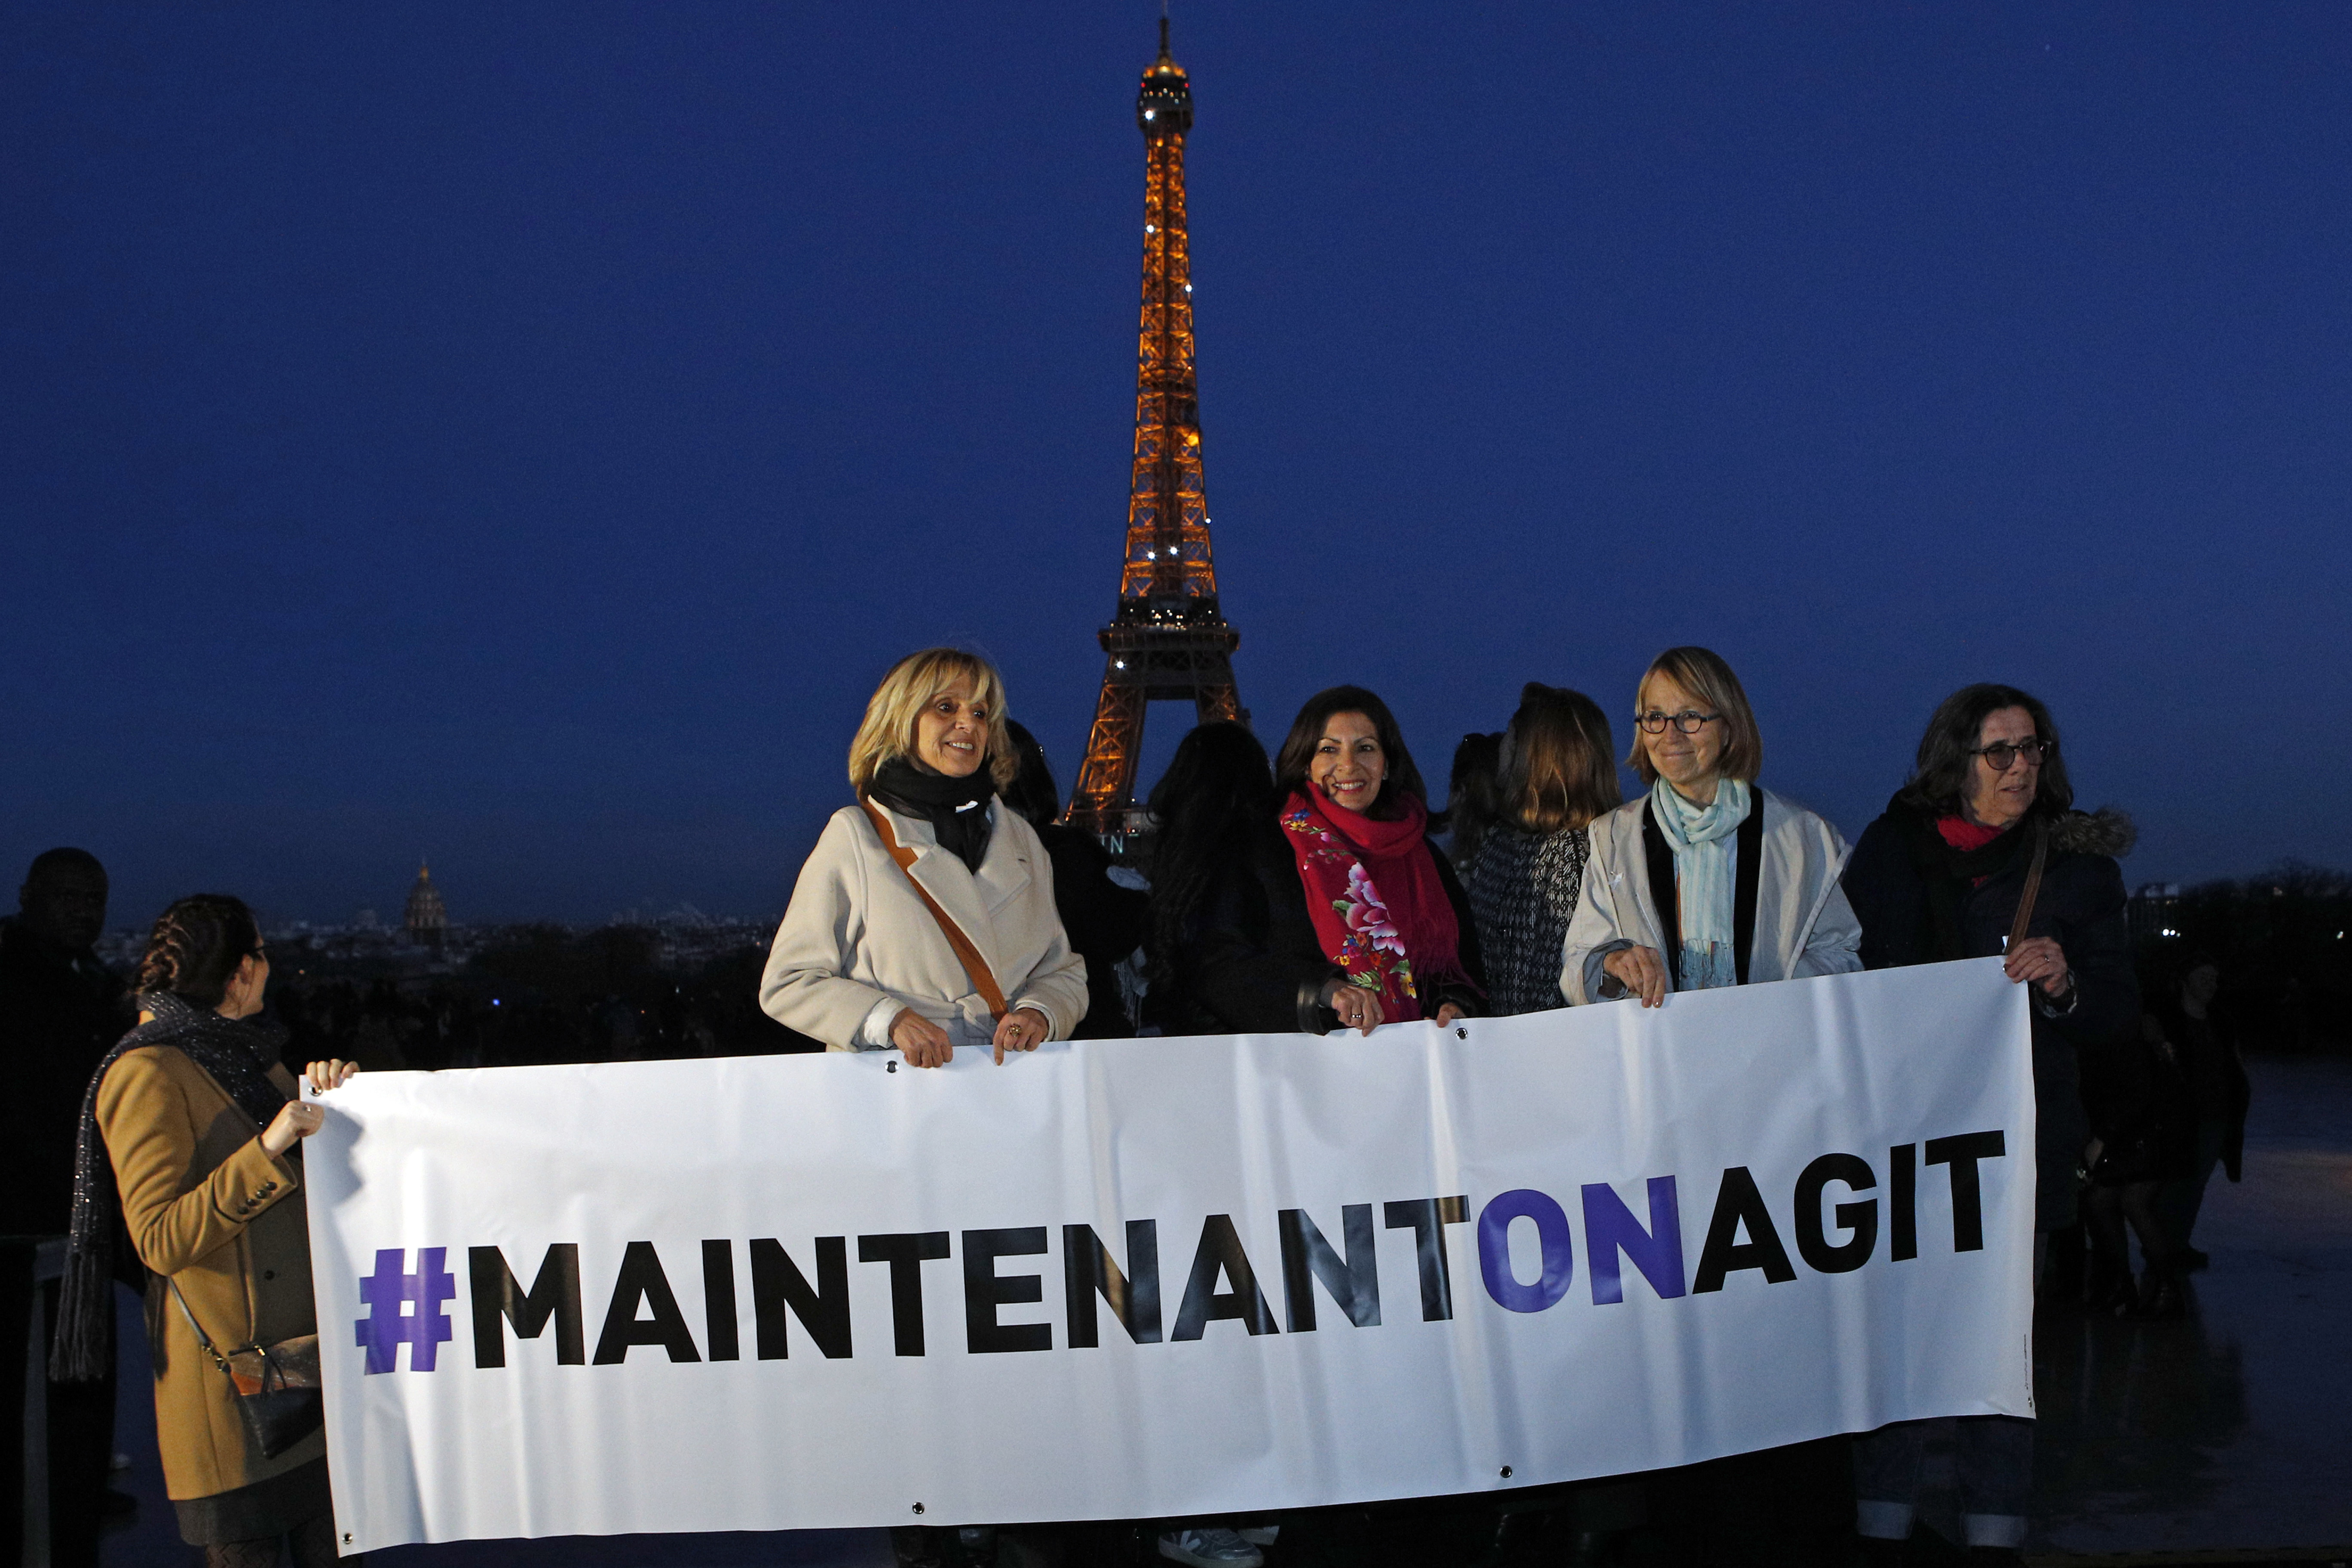 French Culture Minister Francoise Nyssen, second right, Paris mayor Anne Hidalgo, center, and members of several women's rights associations hold a banner reading